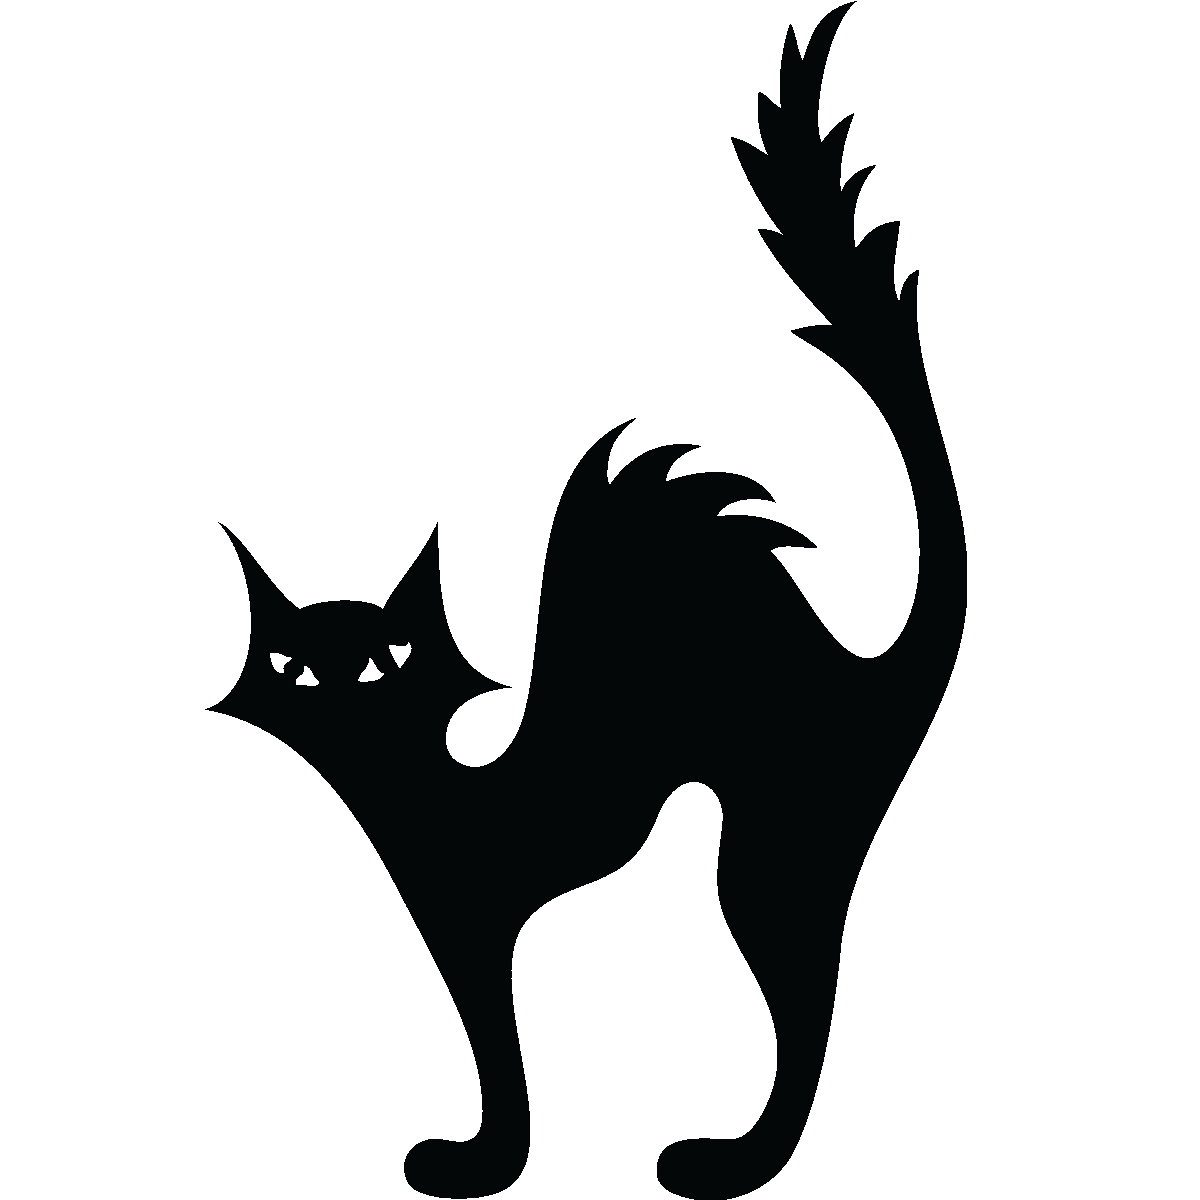 Cat Kitten Halloween Silhouette Clip art.